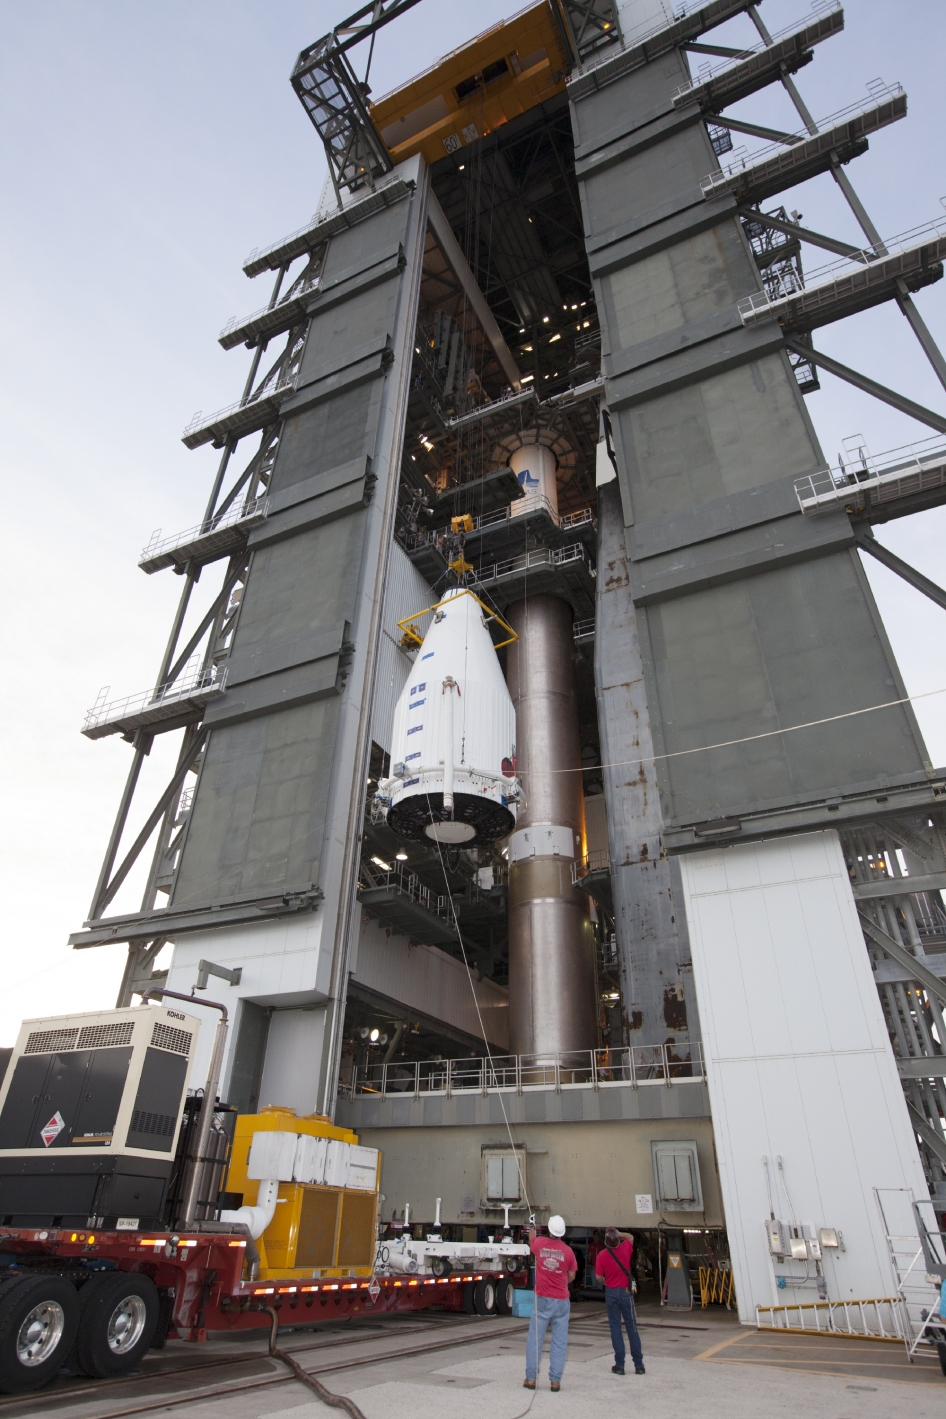 NASA's MAVEN (Mars Atmosphere and Volatile EvolutioN) spacecraft, inside a payload fairing, is hoisted to the top of a United Launch Alliance Atlas V rocket at the Vertical Integration Facility at Cape Canaveral Air Force Station's Space Launch Complex 41.